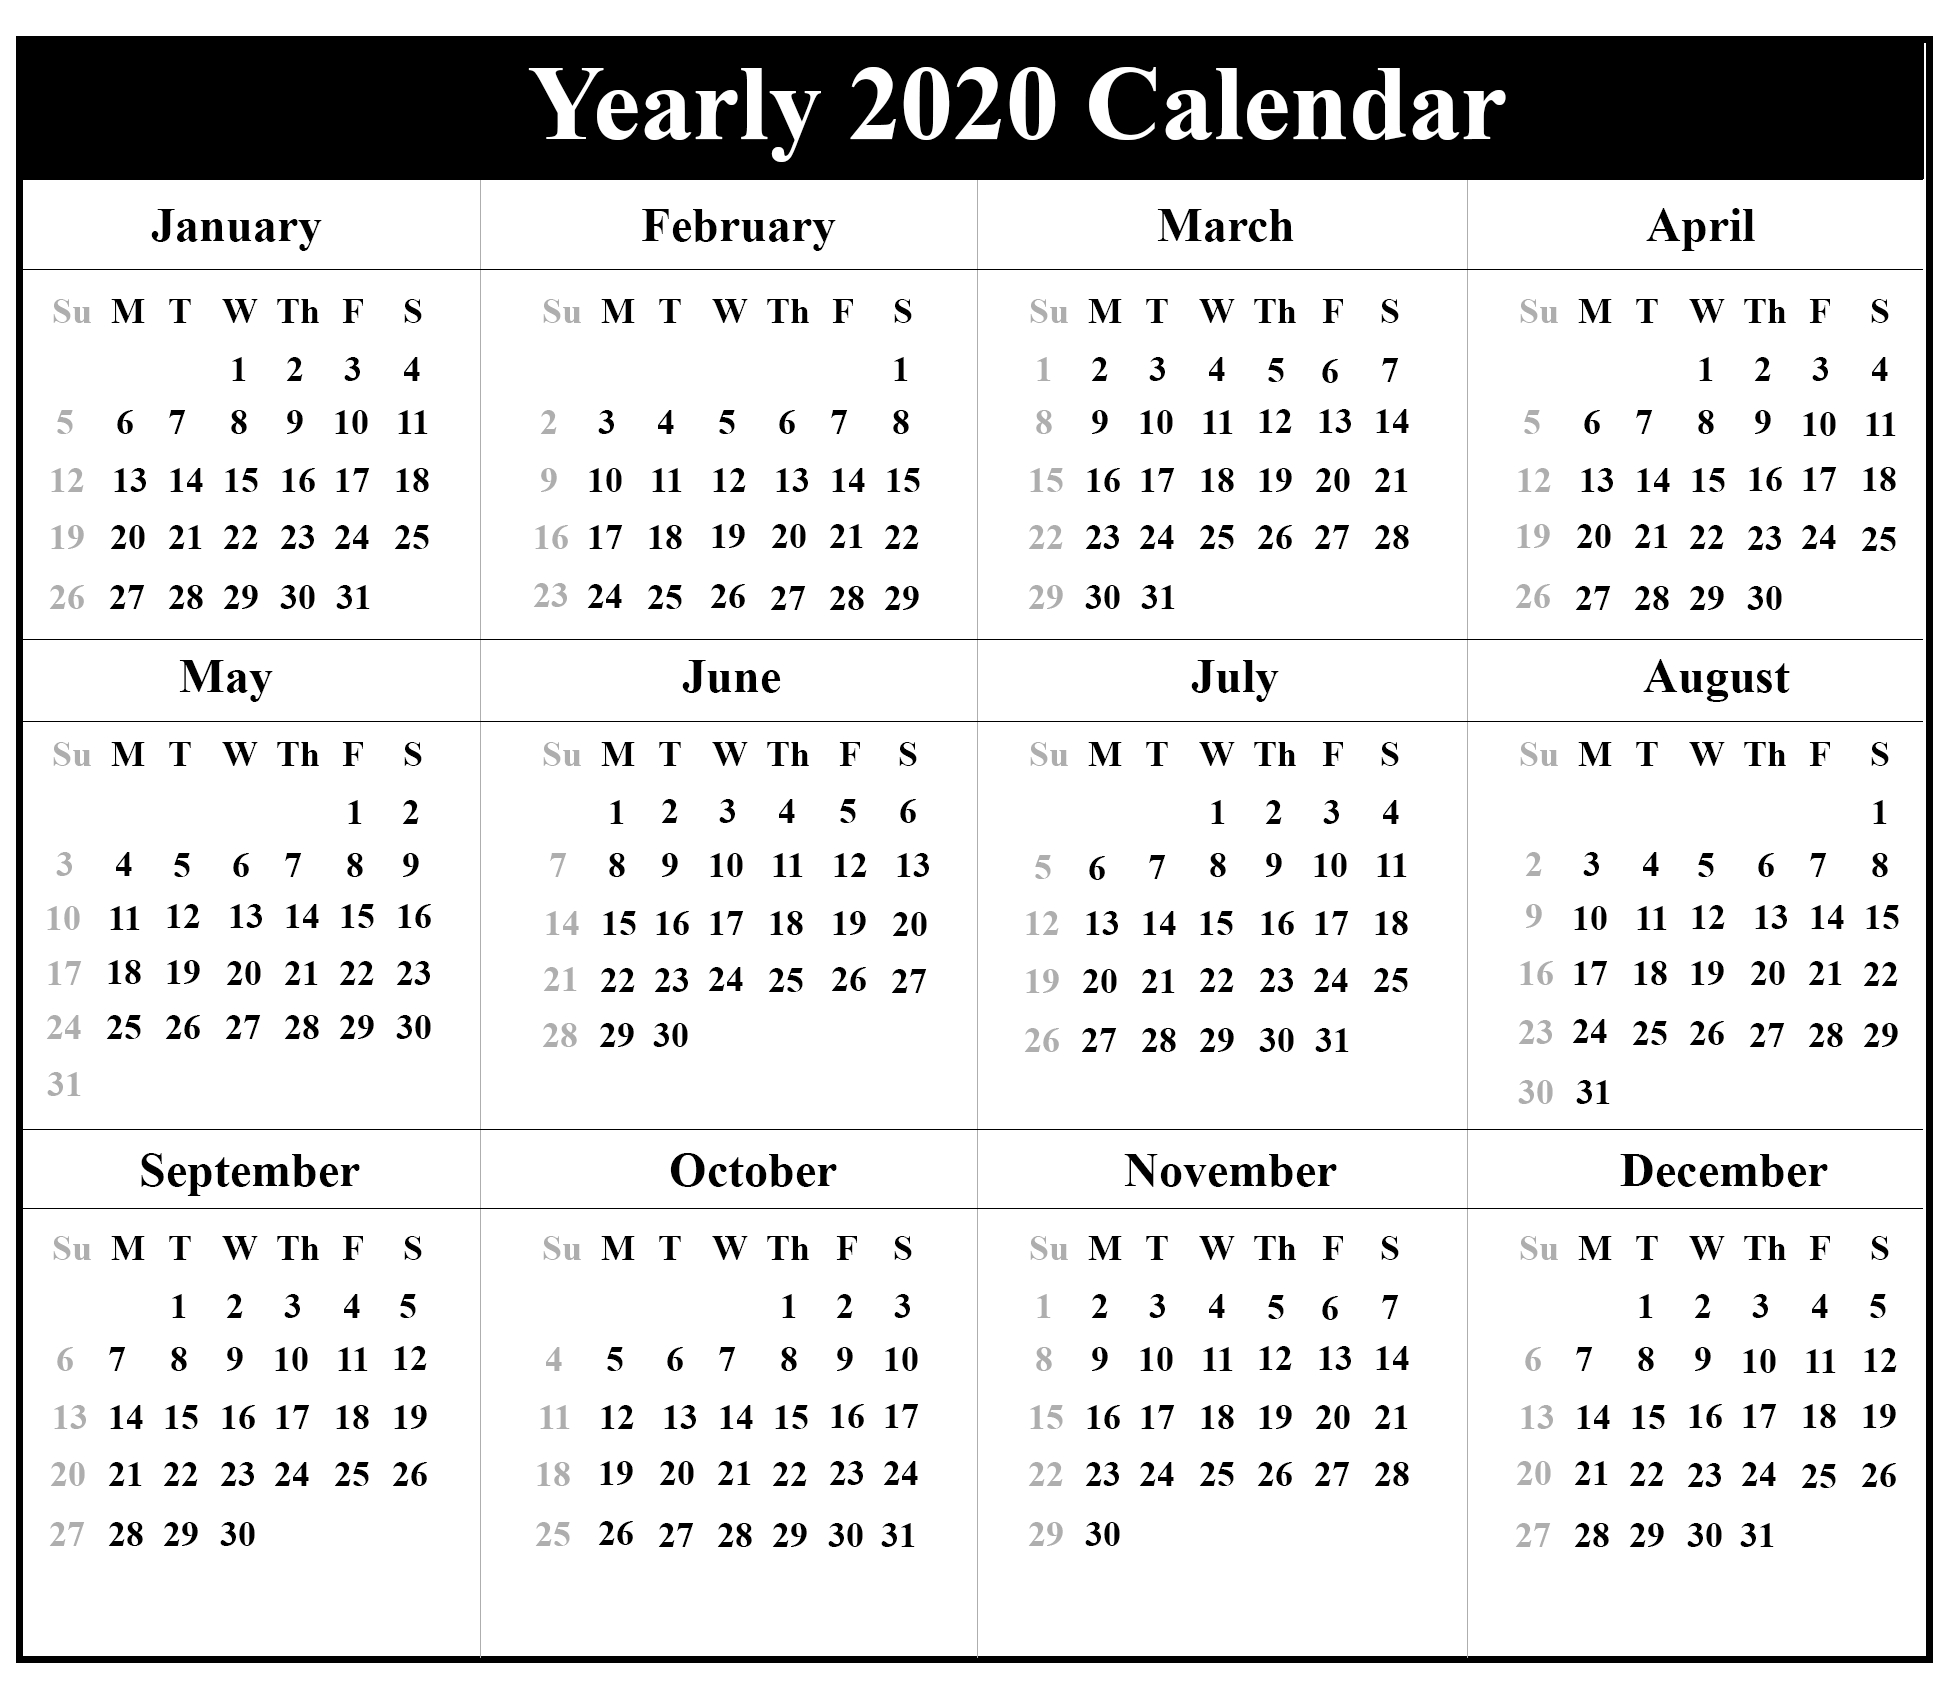 Printable Yearly Calendar 2020 Template With Holidays [Pdf-2020 Calendar With Islamic Holidays